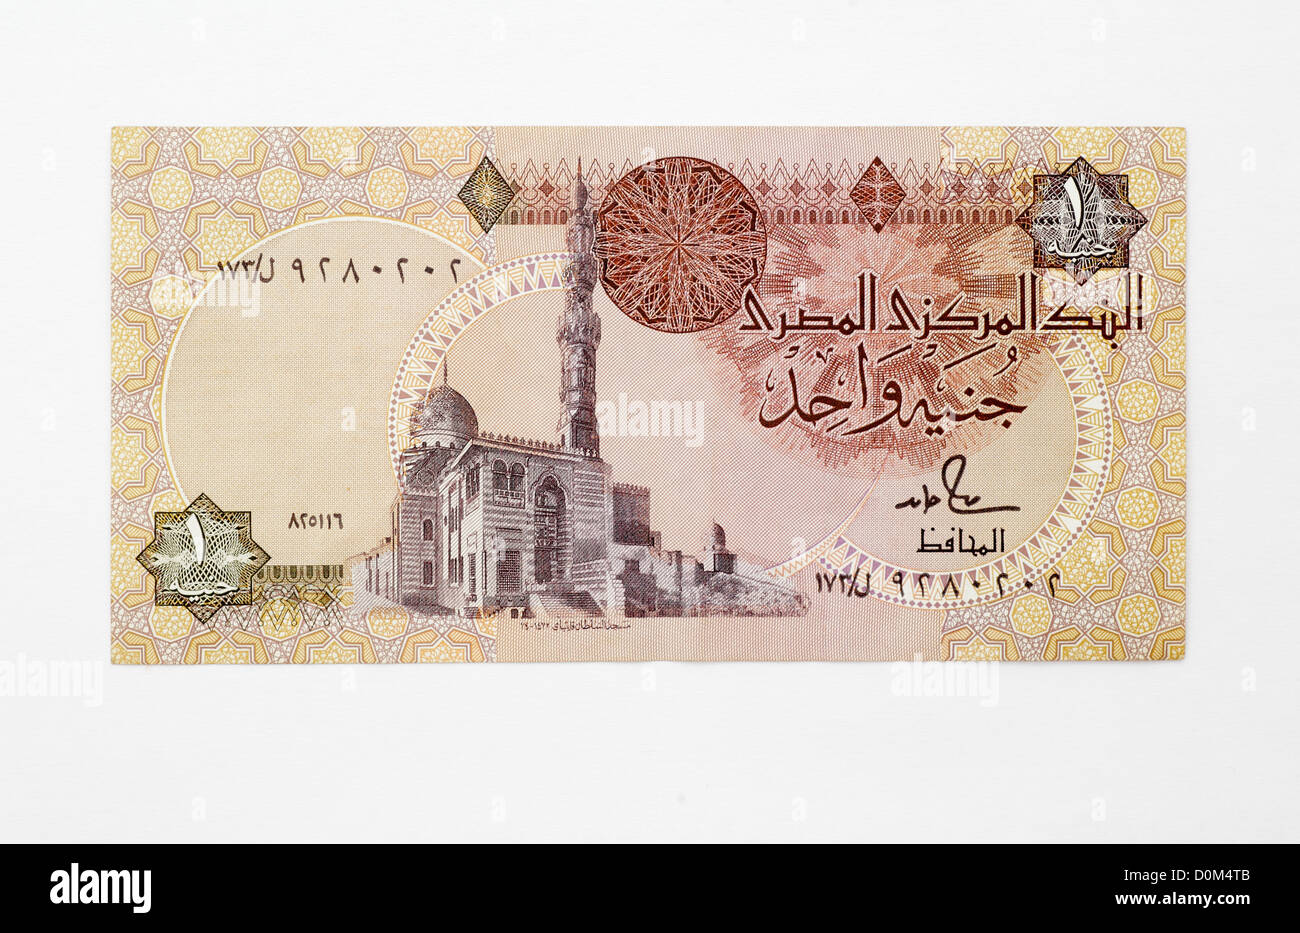 Banknote of egypt stock photos banknote of egypt stock images alamy bank of egypt 1 one pound note banknotes egyptian money stock image biocorpaavc Images